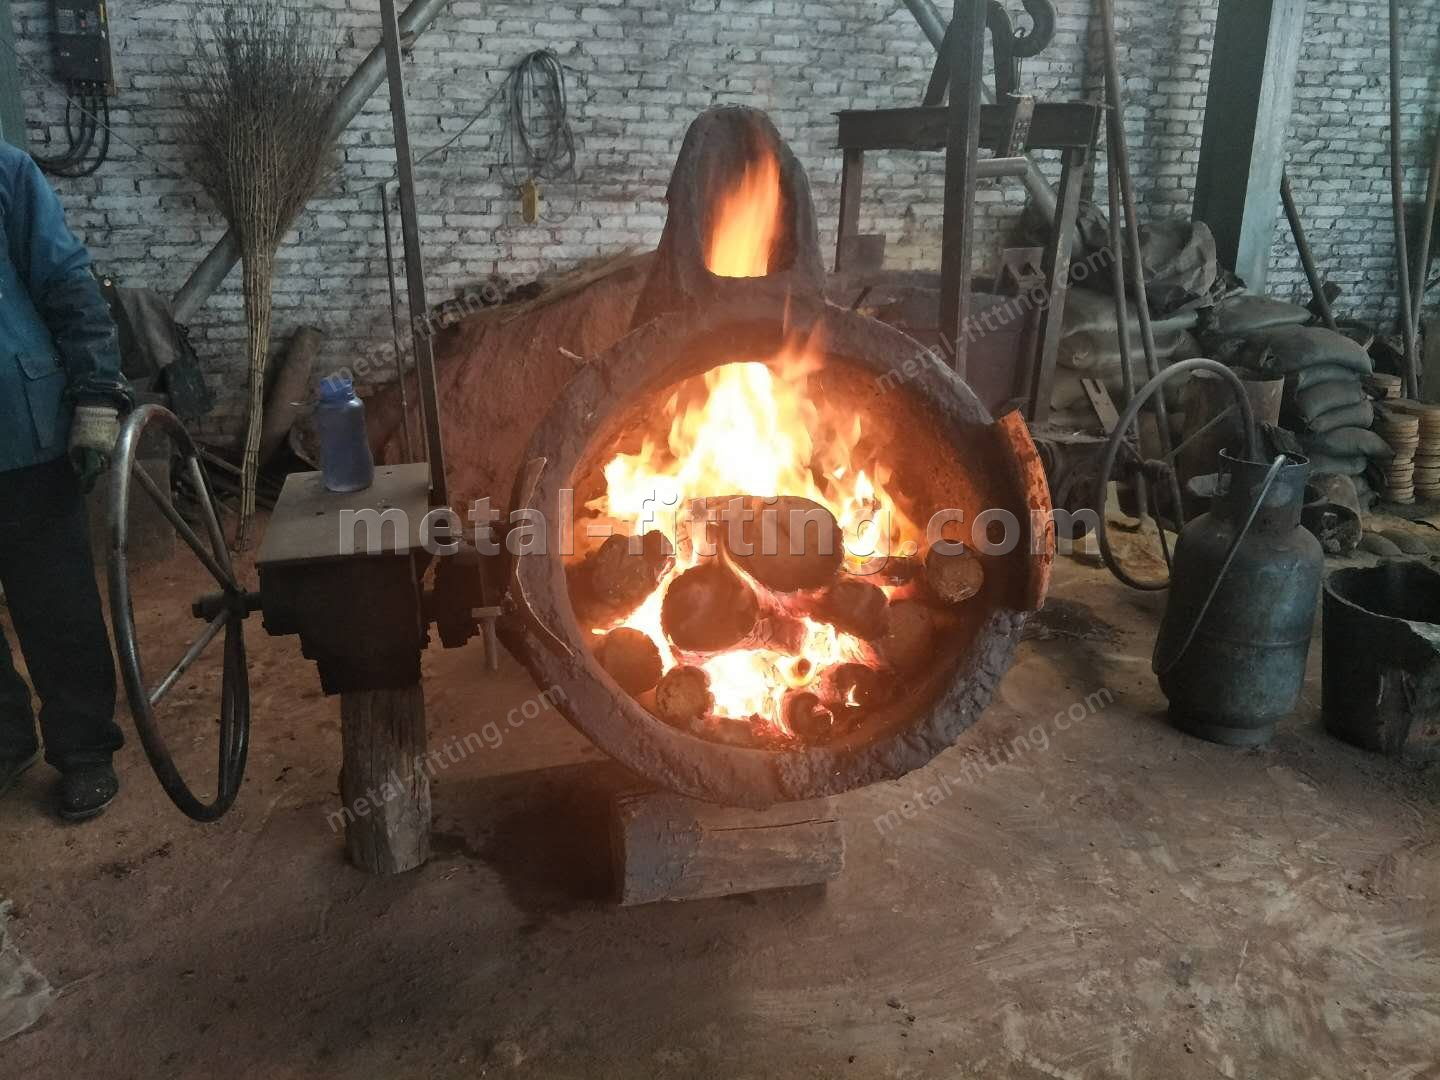 Casted Gear Ring,cast iron pully for cement Mixer-312383611955901193